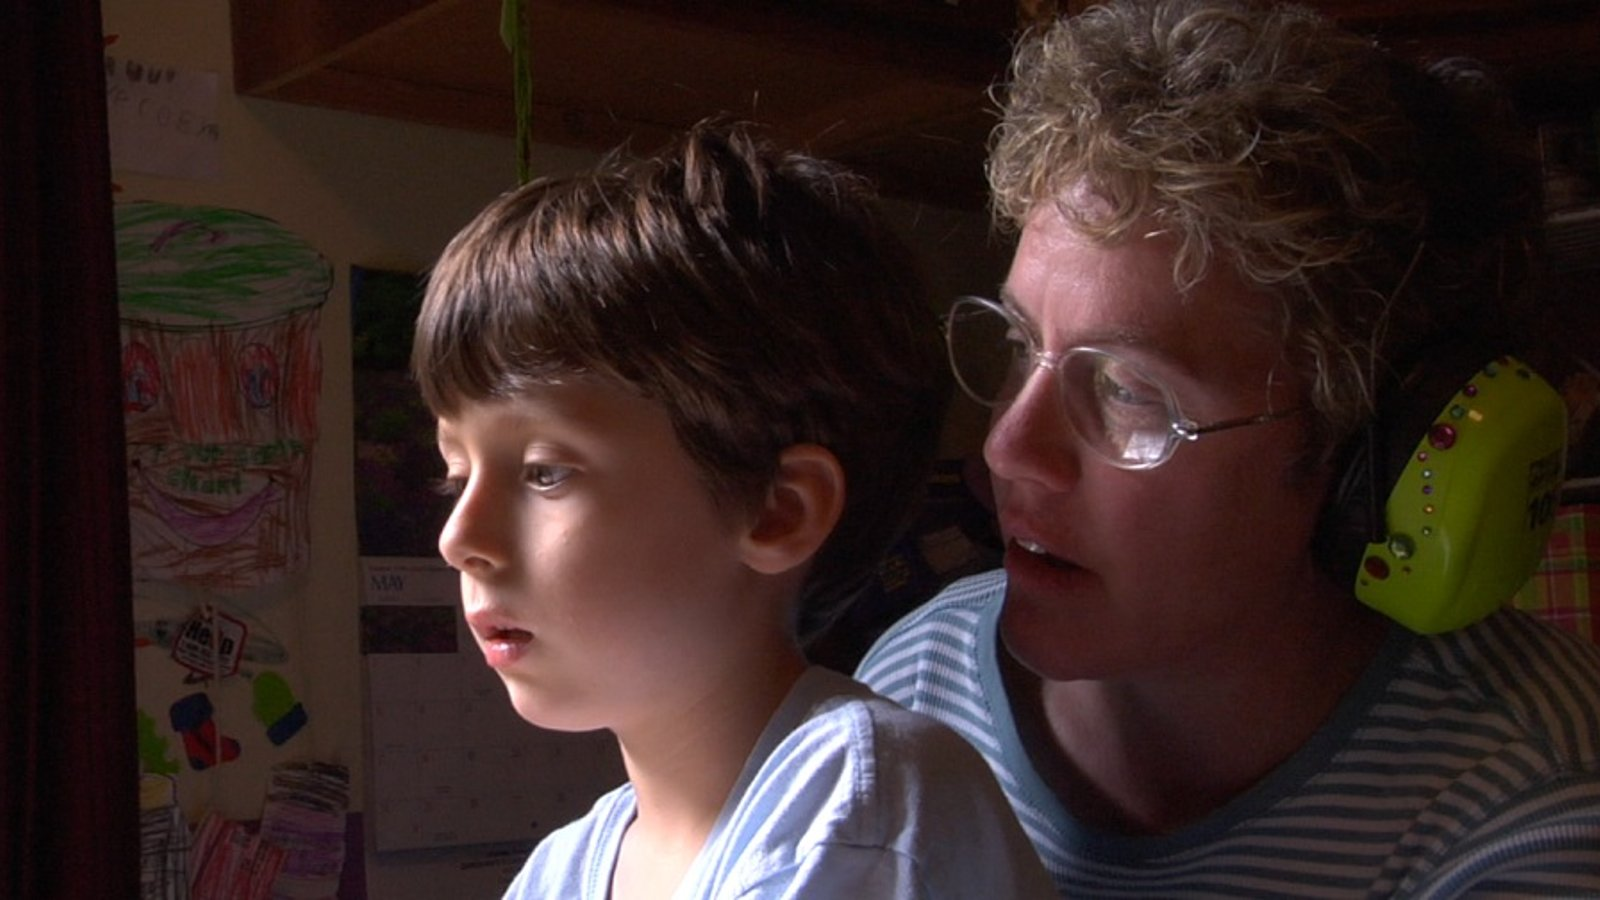 Neurotypical - A Film About Individuals on the Autism Spectrum